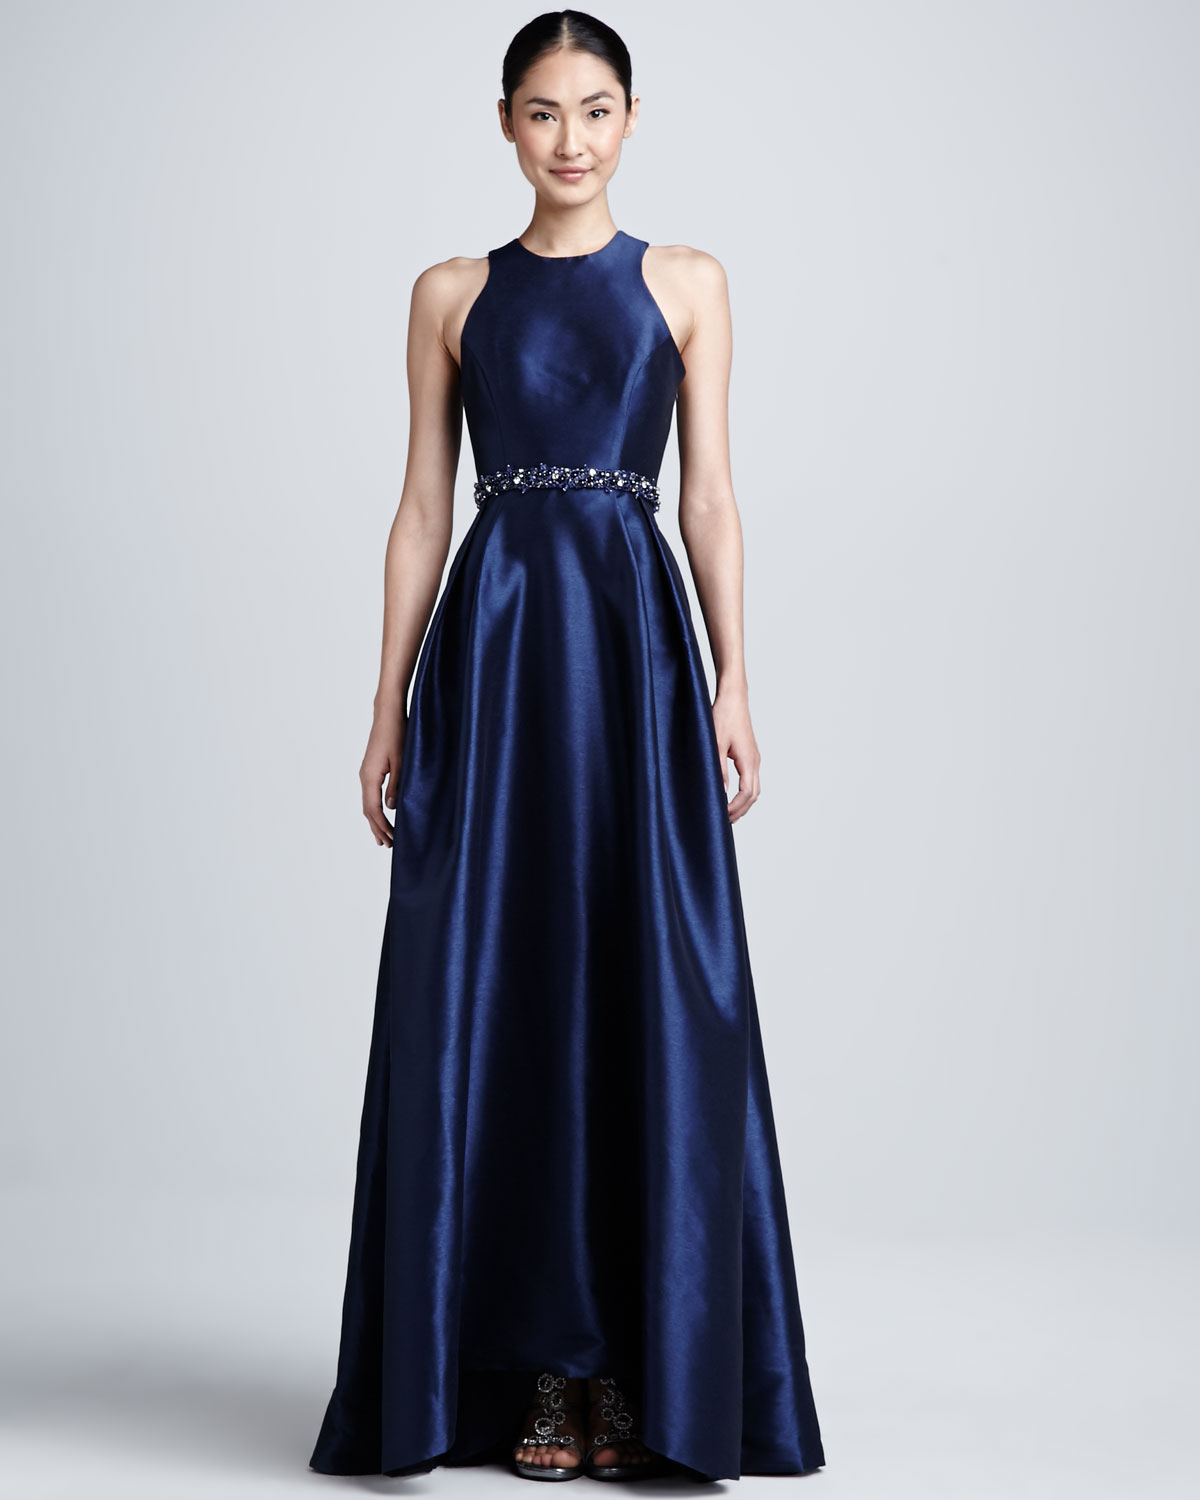 Lyst - Ml Monique Lhuillier Racer Front Beaded Waist Gown in Blue